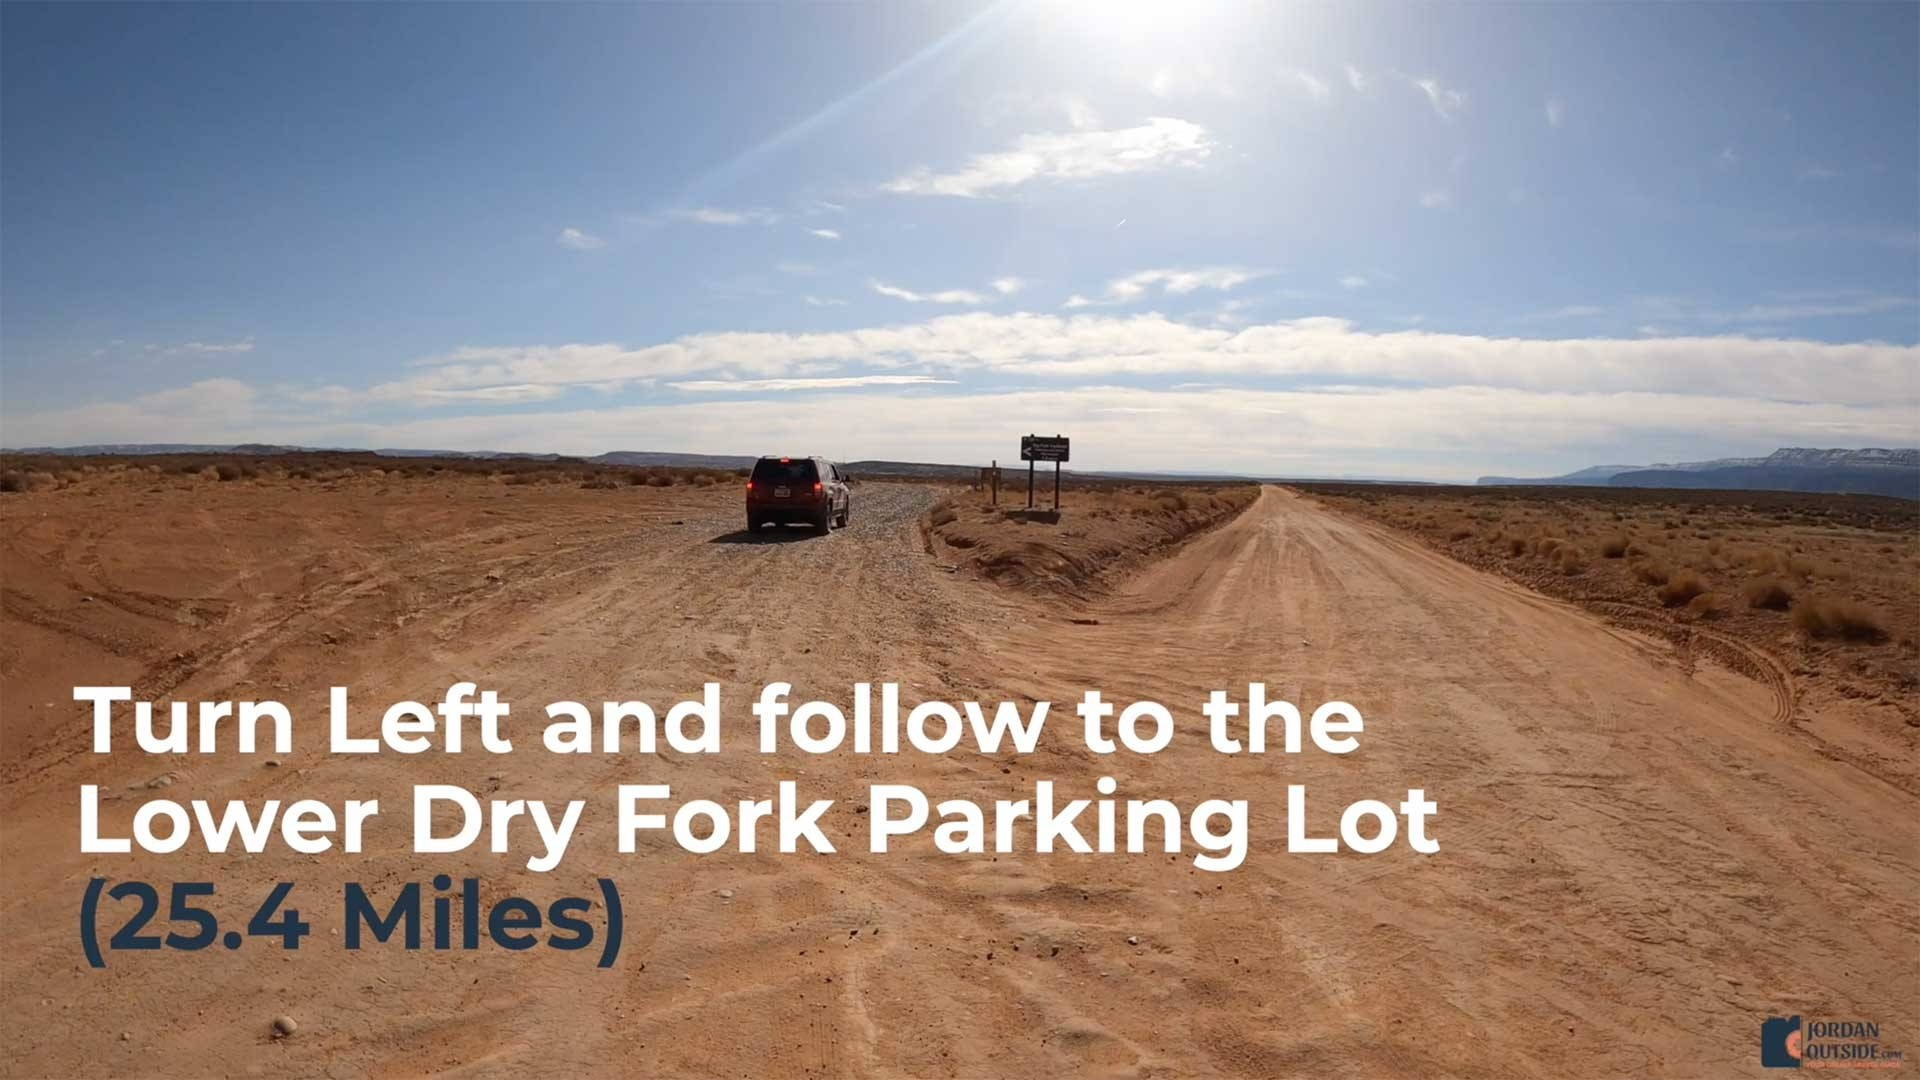 Turn Left and follow to the Lower Dry Fork Parking Lot